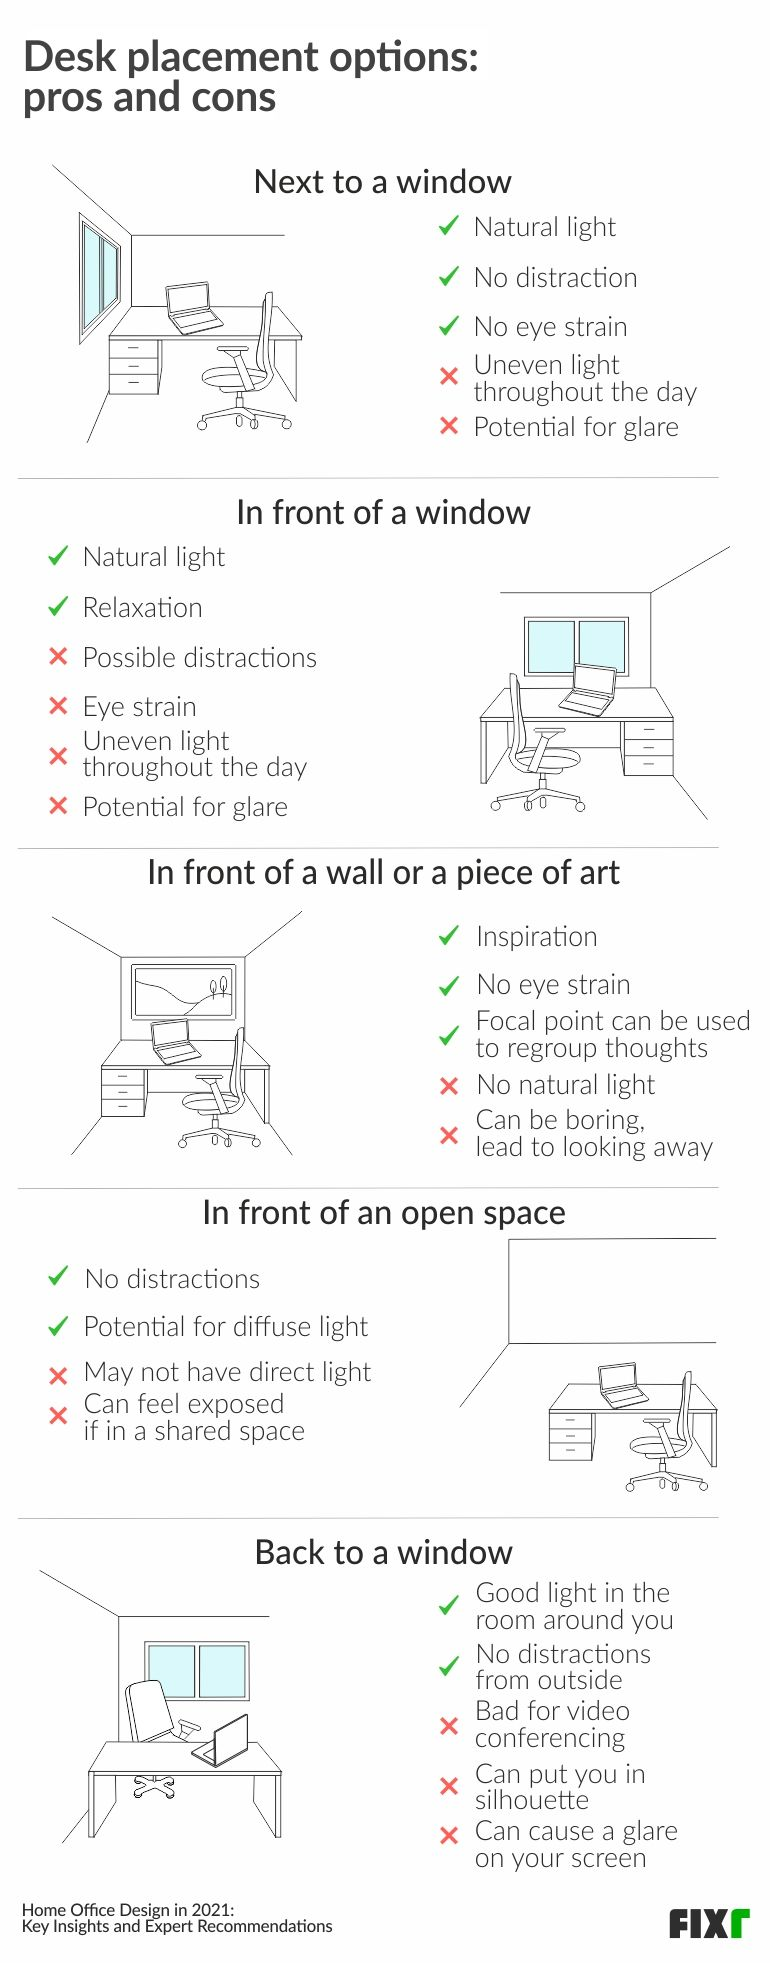 Home Office Design in 2021〡Home Office Desk Placement Options